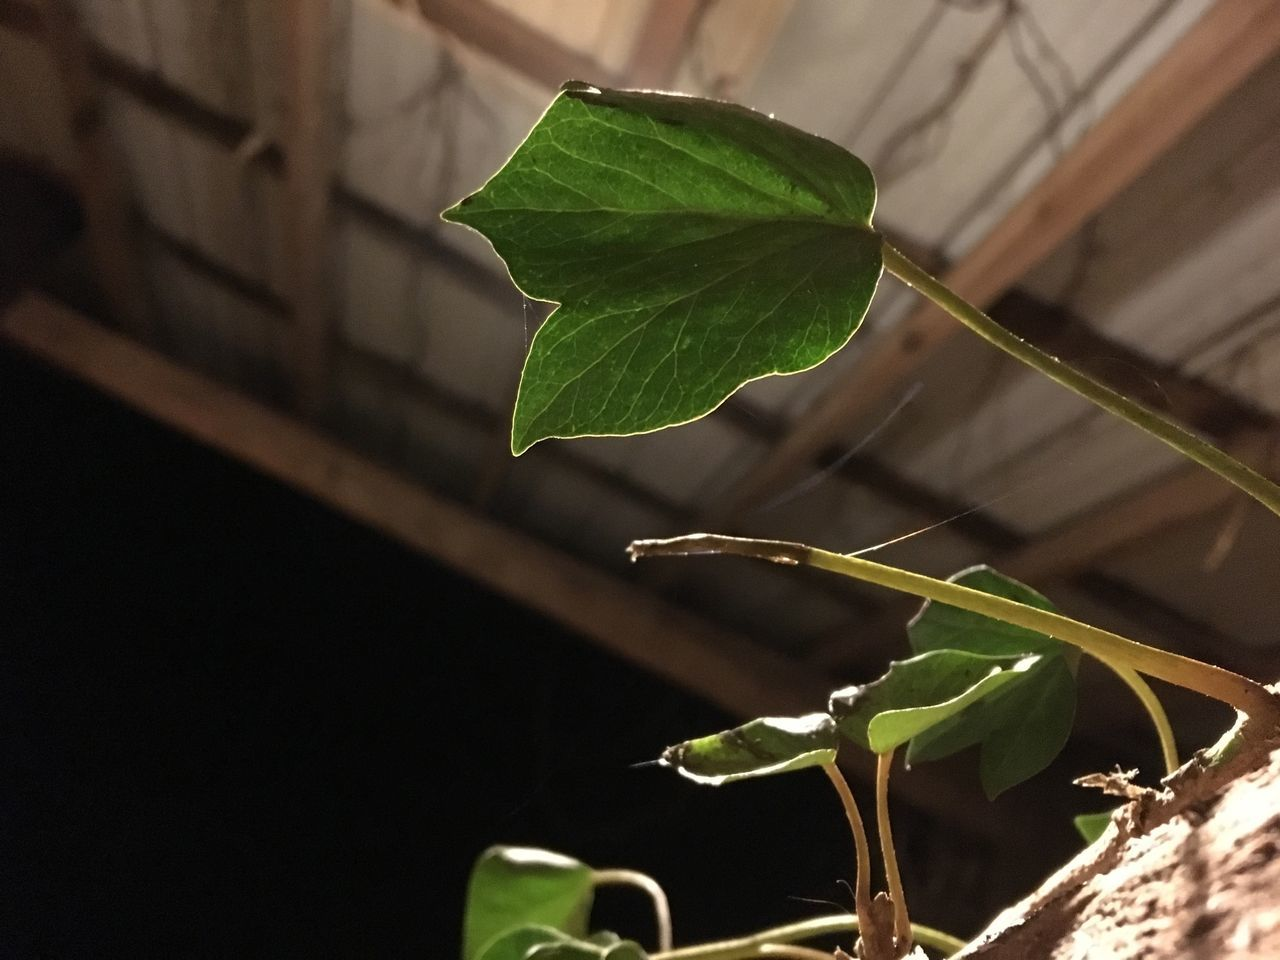 Leaf Green Color Growth Plant Nature Close-up No People Freshness Fragility Beauty In Nature Day Outdoors Water Woodworking Low Angle View Fresh On Eyeem  EyeEmNewHere IPhoneography Silhouette No Filter, No Edit, Just Photography